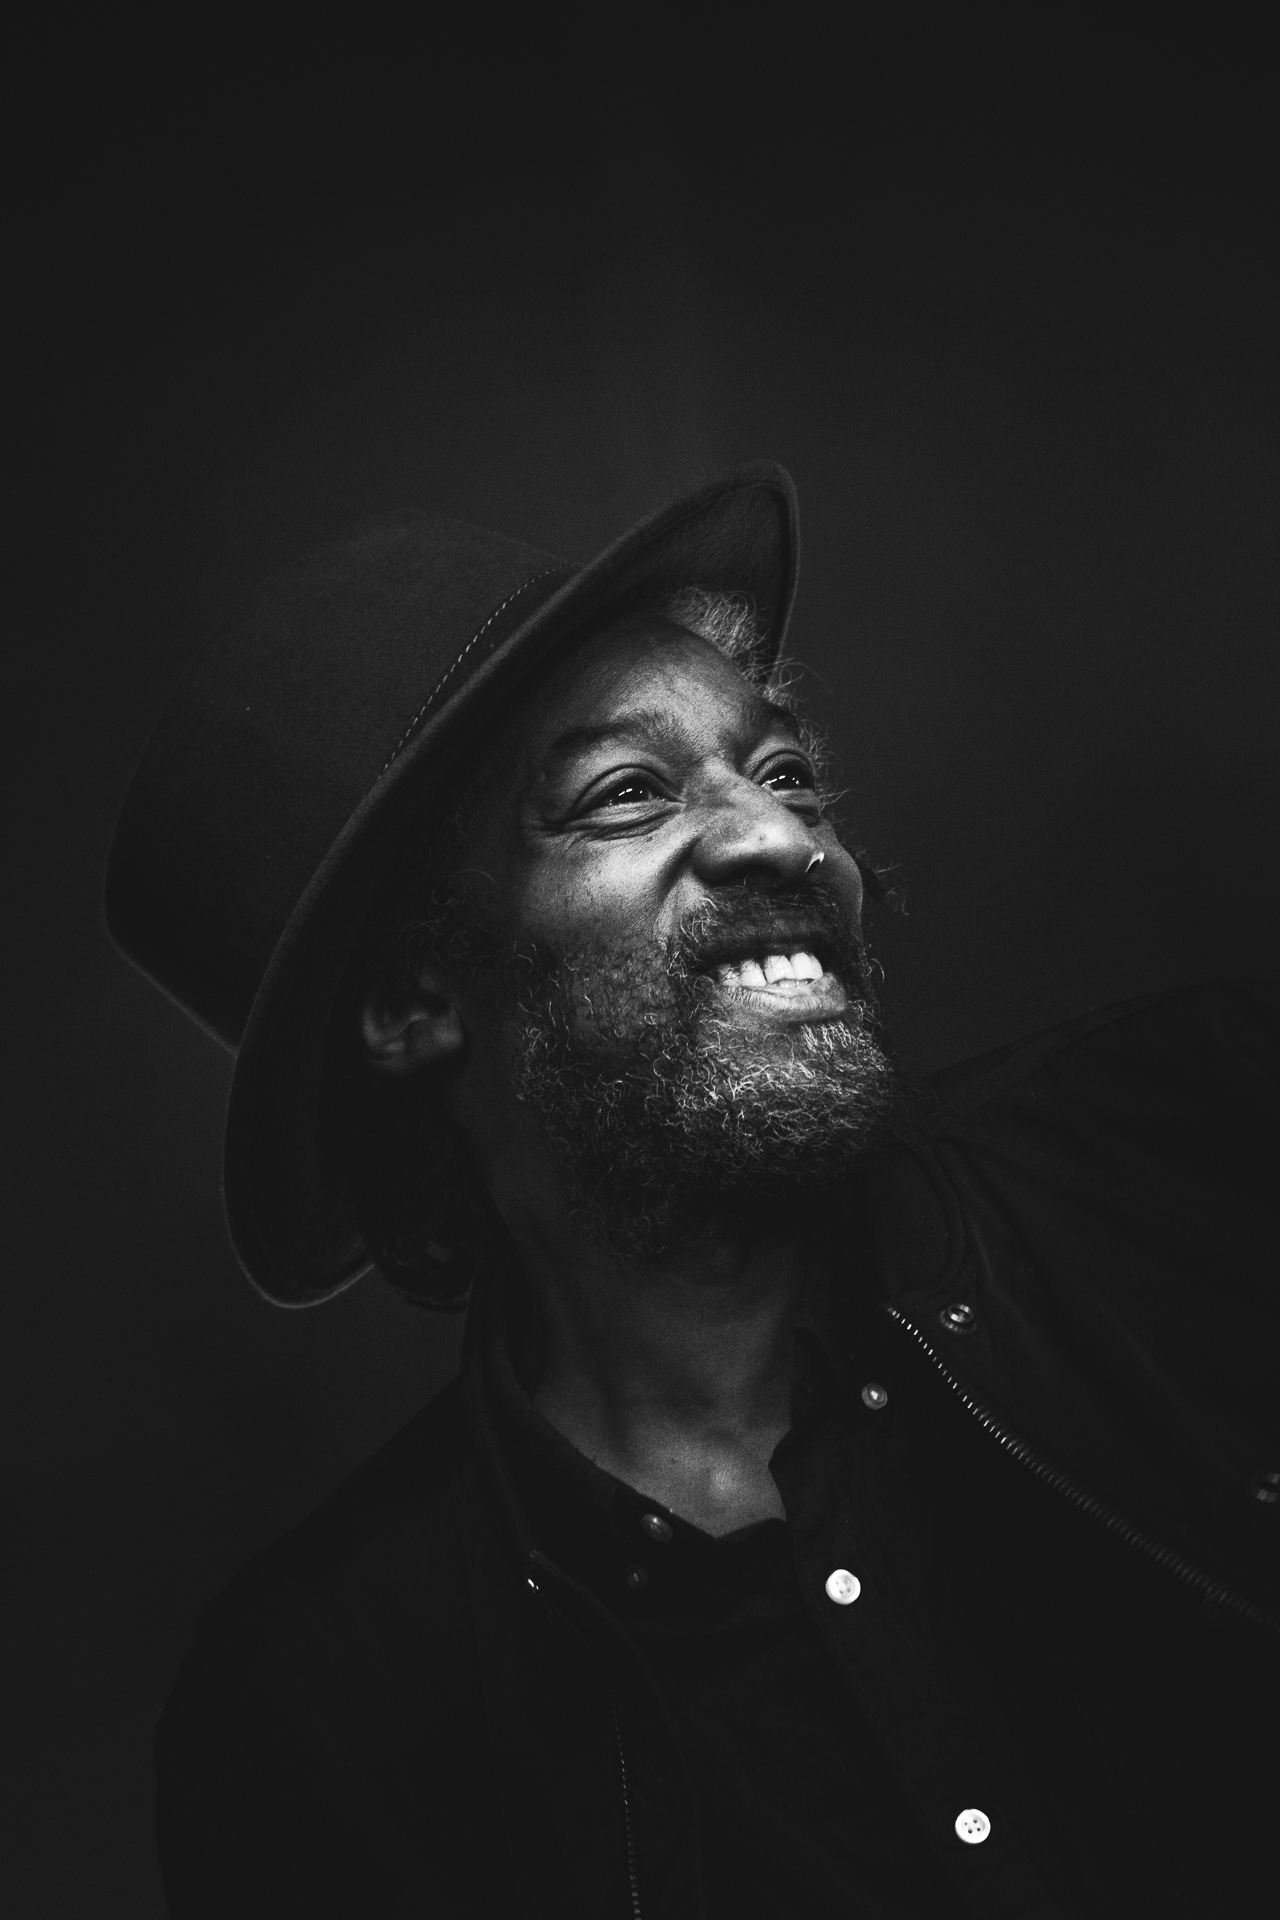 """A chest and head shot of Angus """"Drummie Zeb"""" Gaye. Angus is the Drummer, Vocalist and founder member of the Reggae group Aswad. He is seen here (smiling) whilst on stage with the band at Lakefest 2018."""